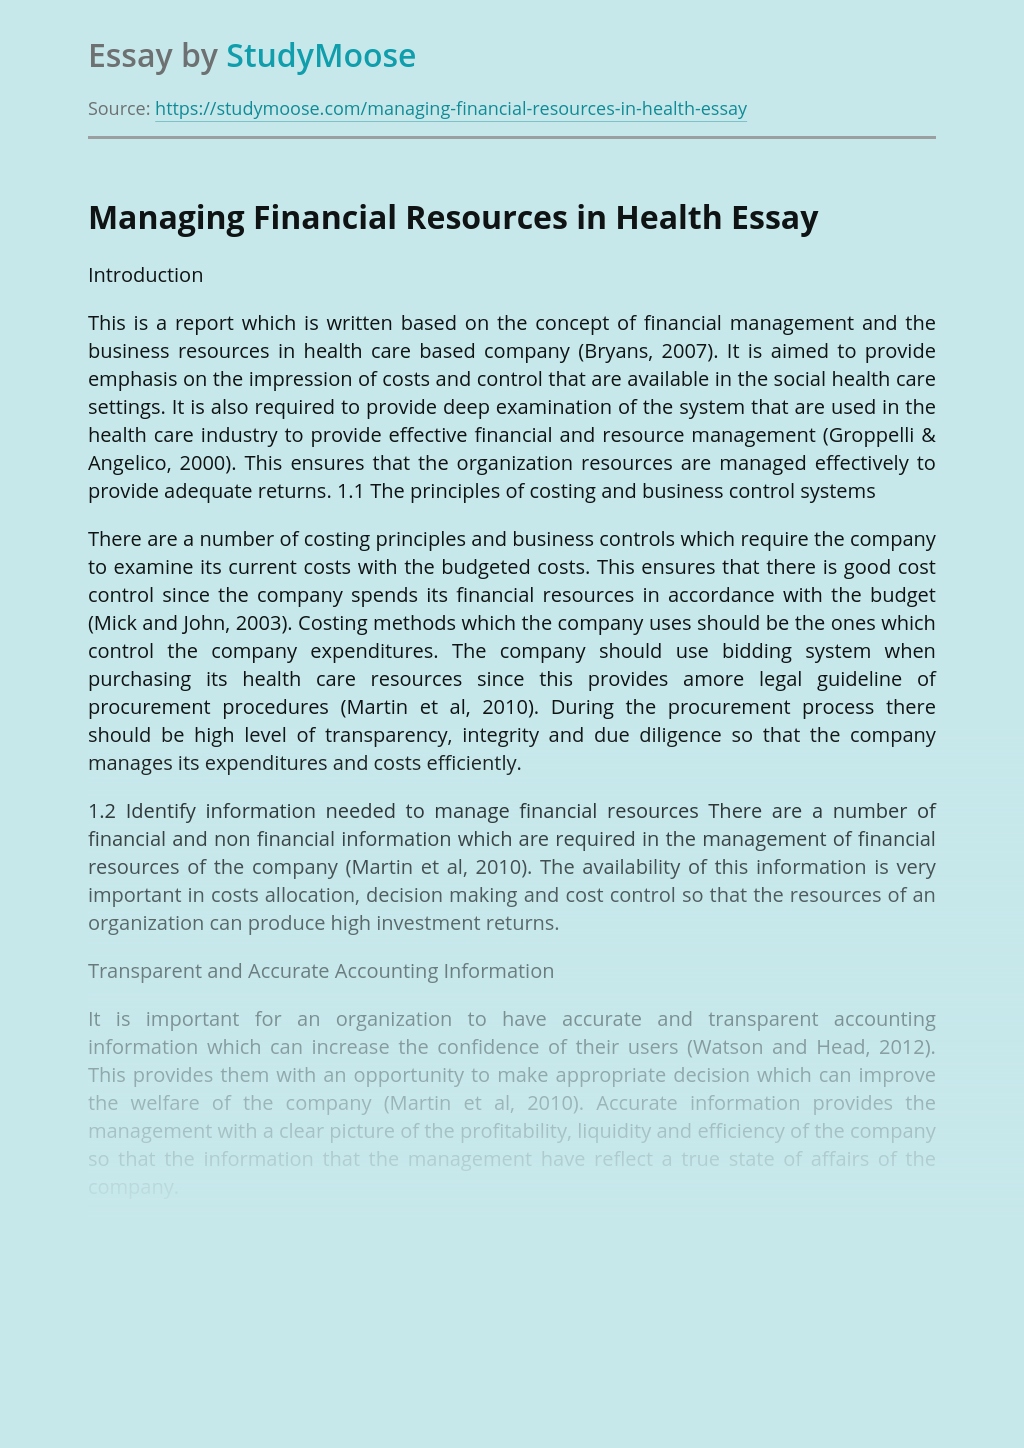 Managing Financial Resources in Health